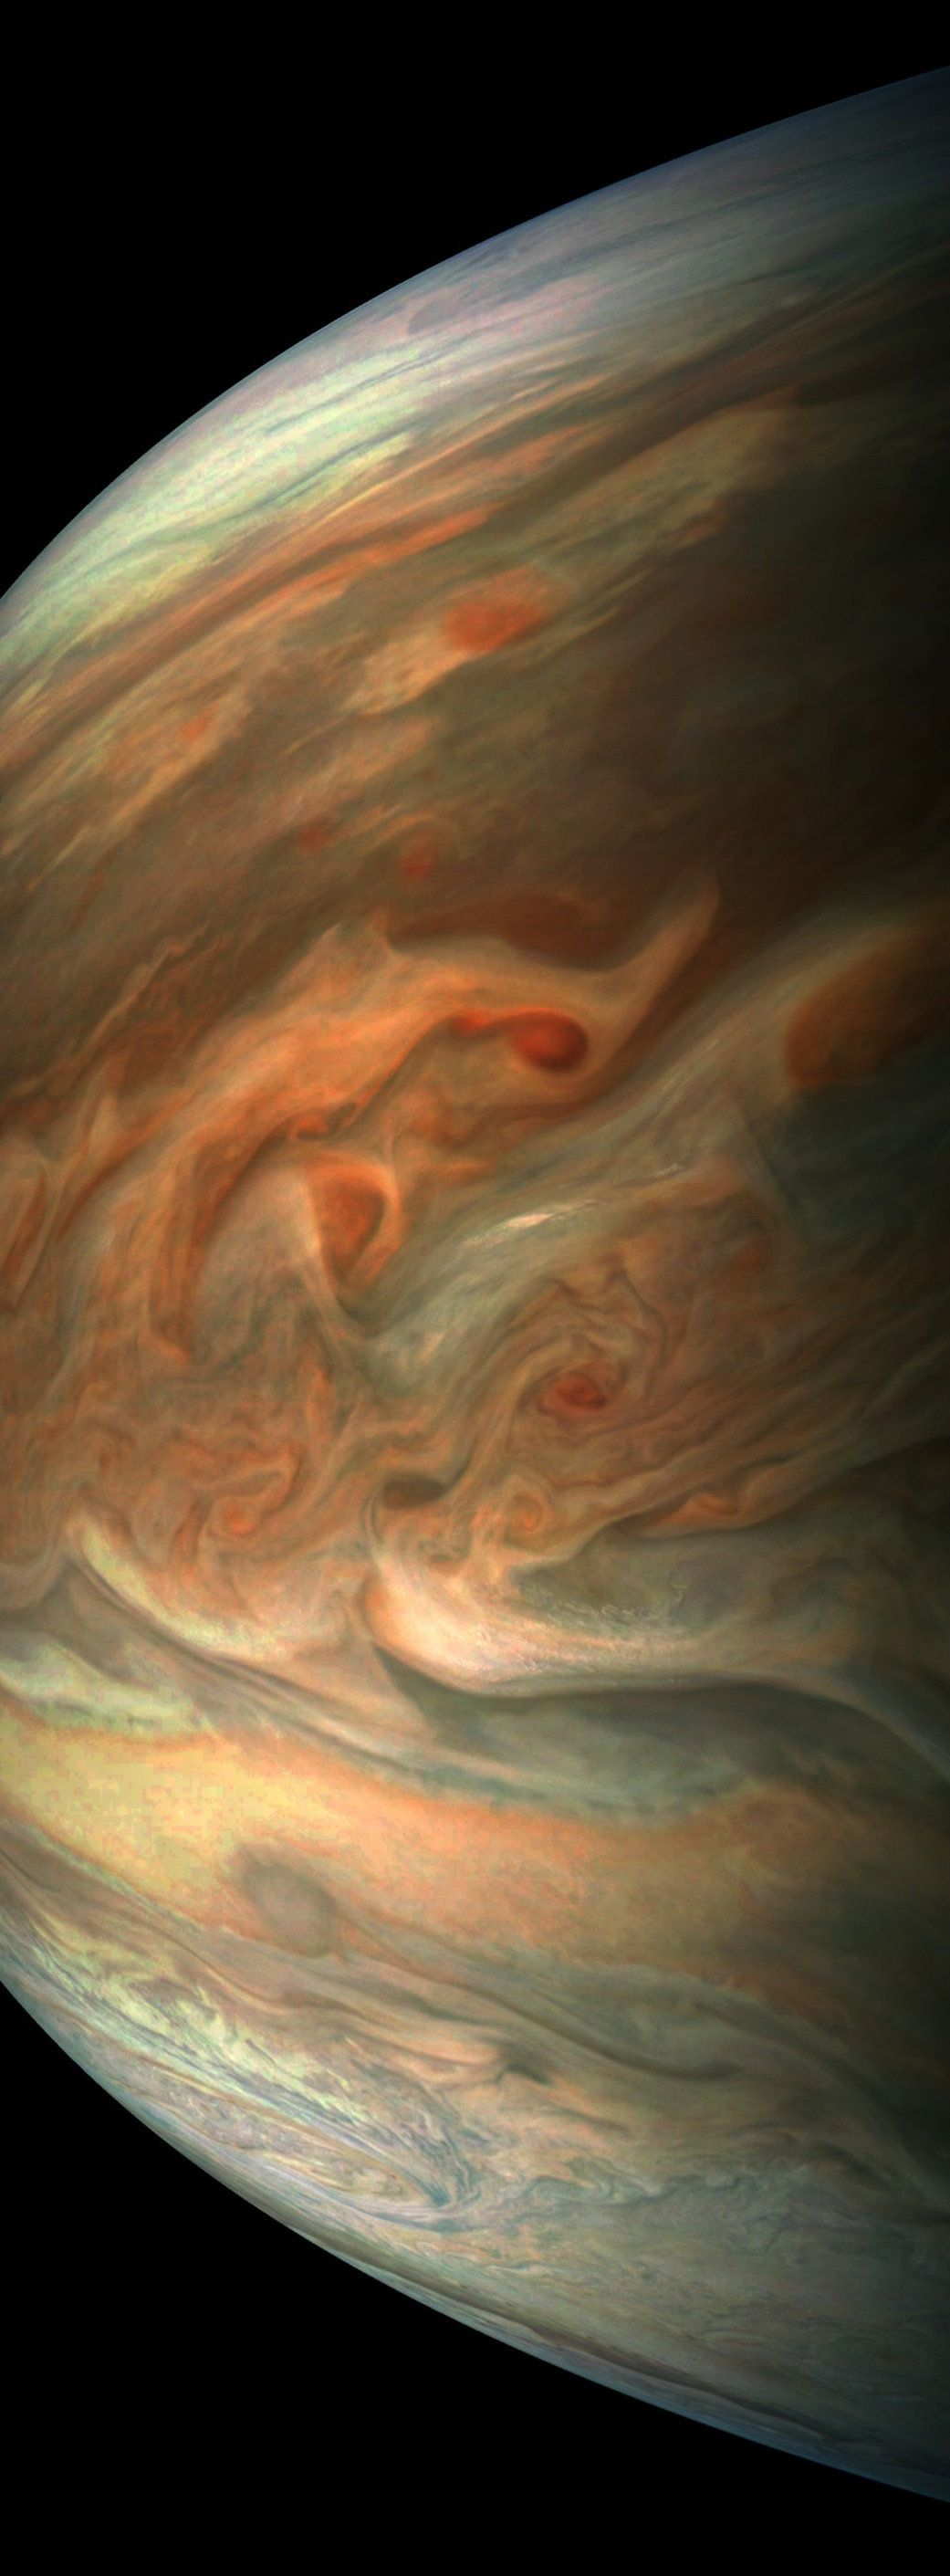 Jupiter Looks Downright Menacing In This Latest Picture From